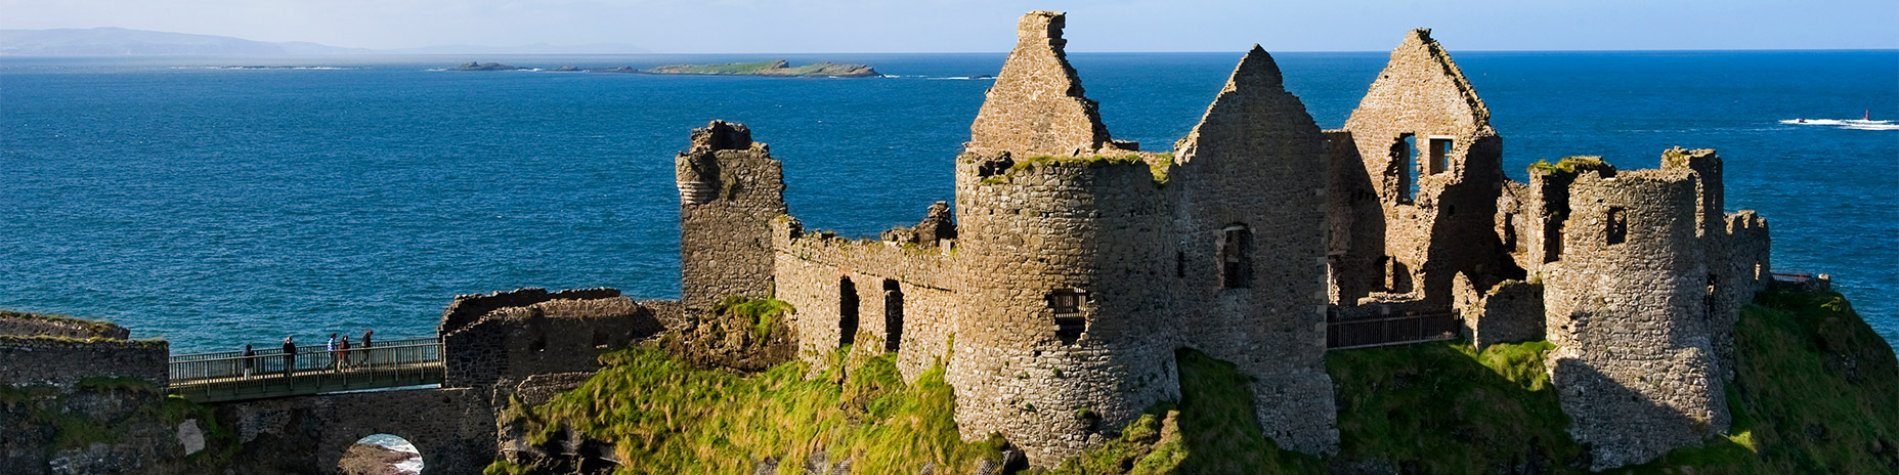 See Dunluce Castle and More on a Day Trip to the Causeway Coast From Dublin